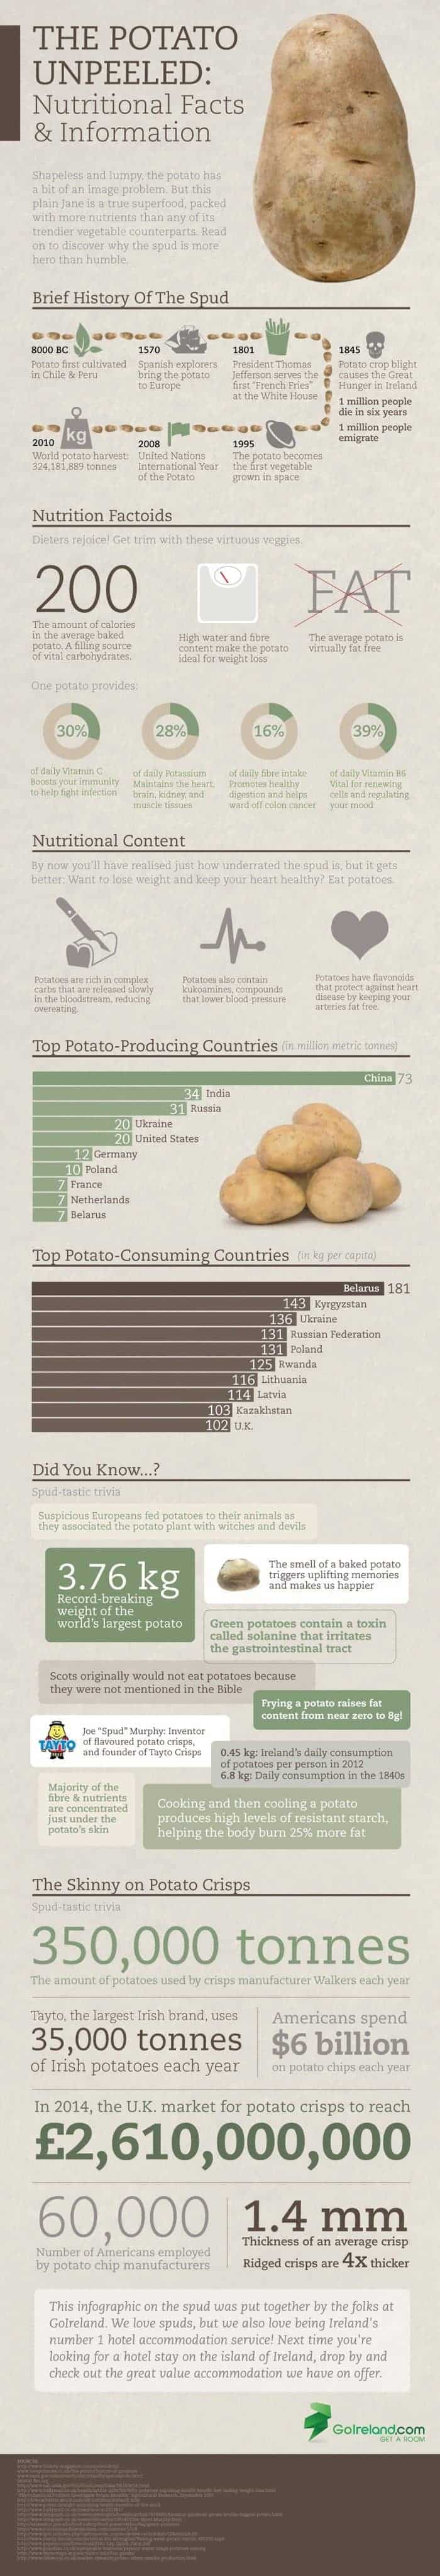 Potato Unpeeled Nutritional Facts & Information